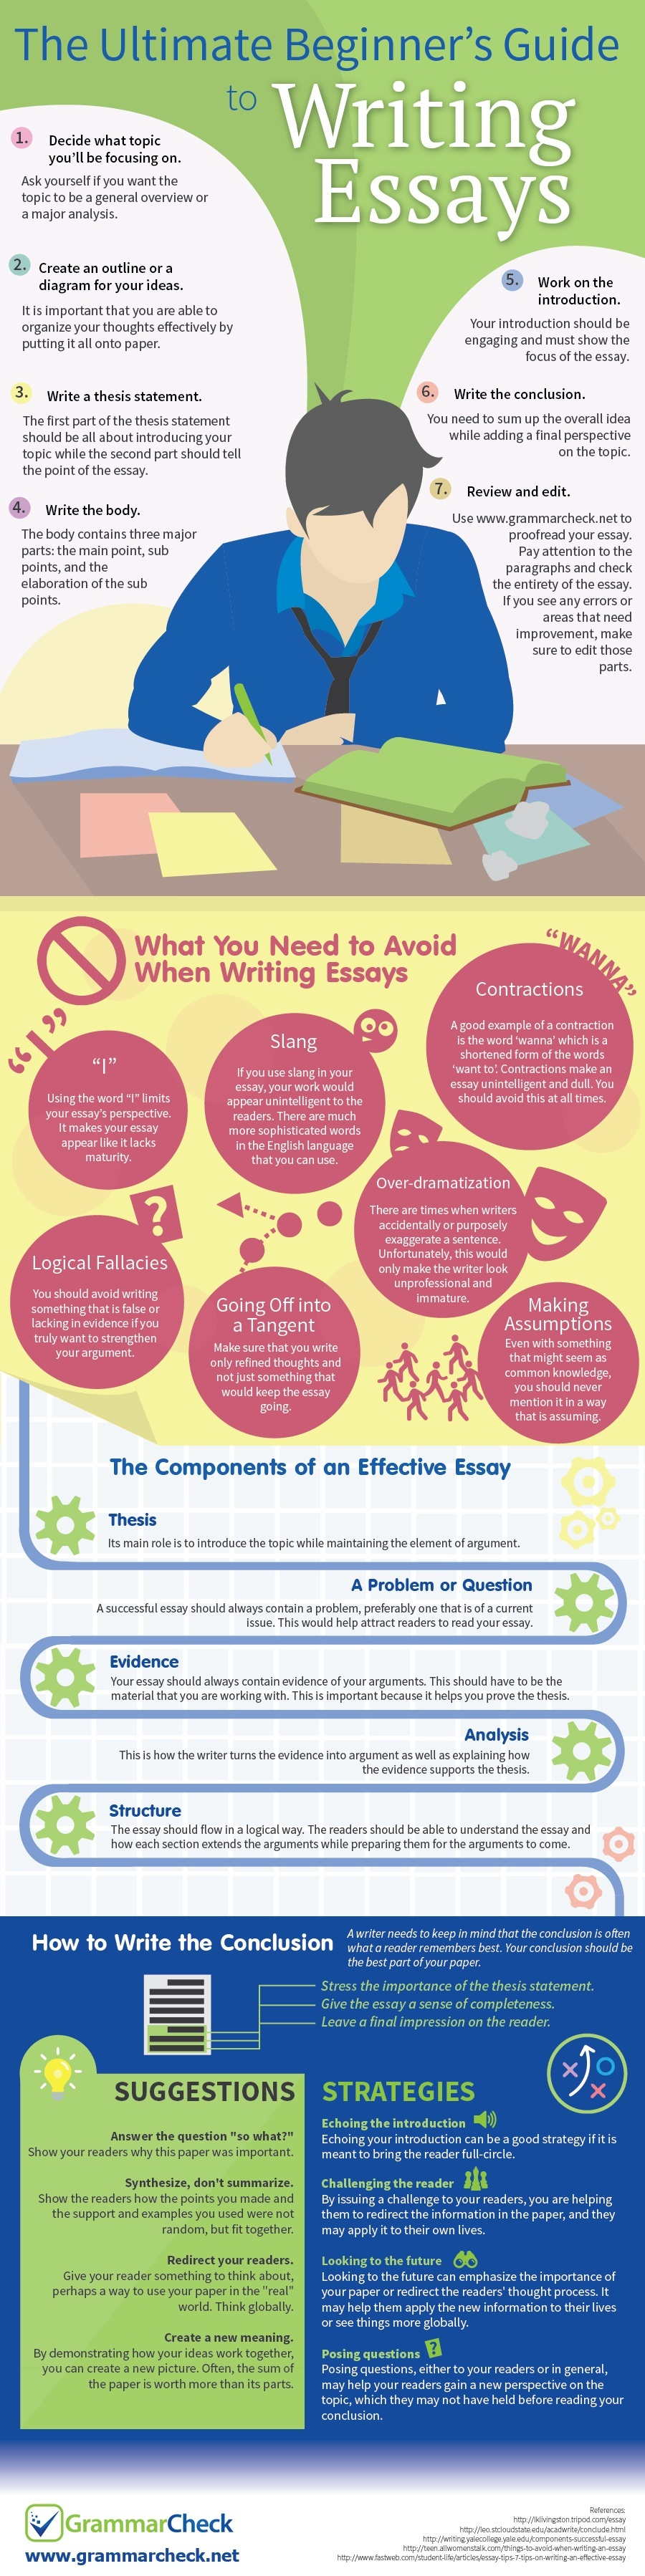 Essay Examples High School  Essay Good Health also Good Persuasive Essay Topics For High School The Ultimate Beginners Guide To Writing Essays Infographic Last Year Of High School Essay